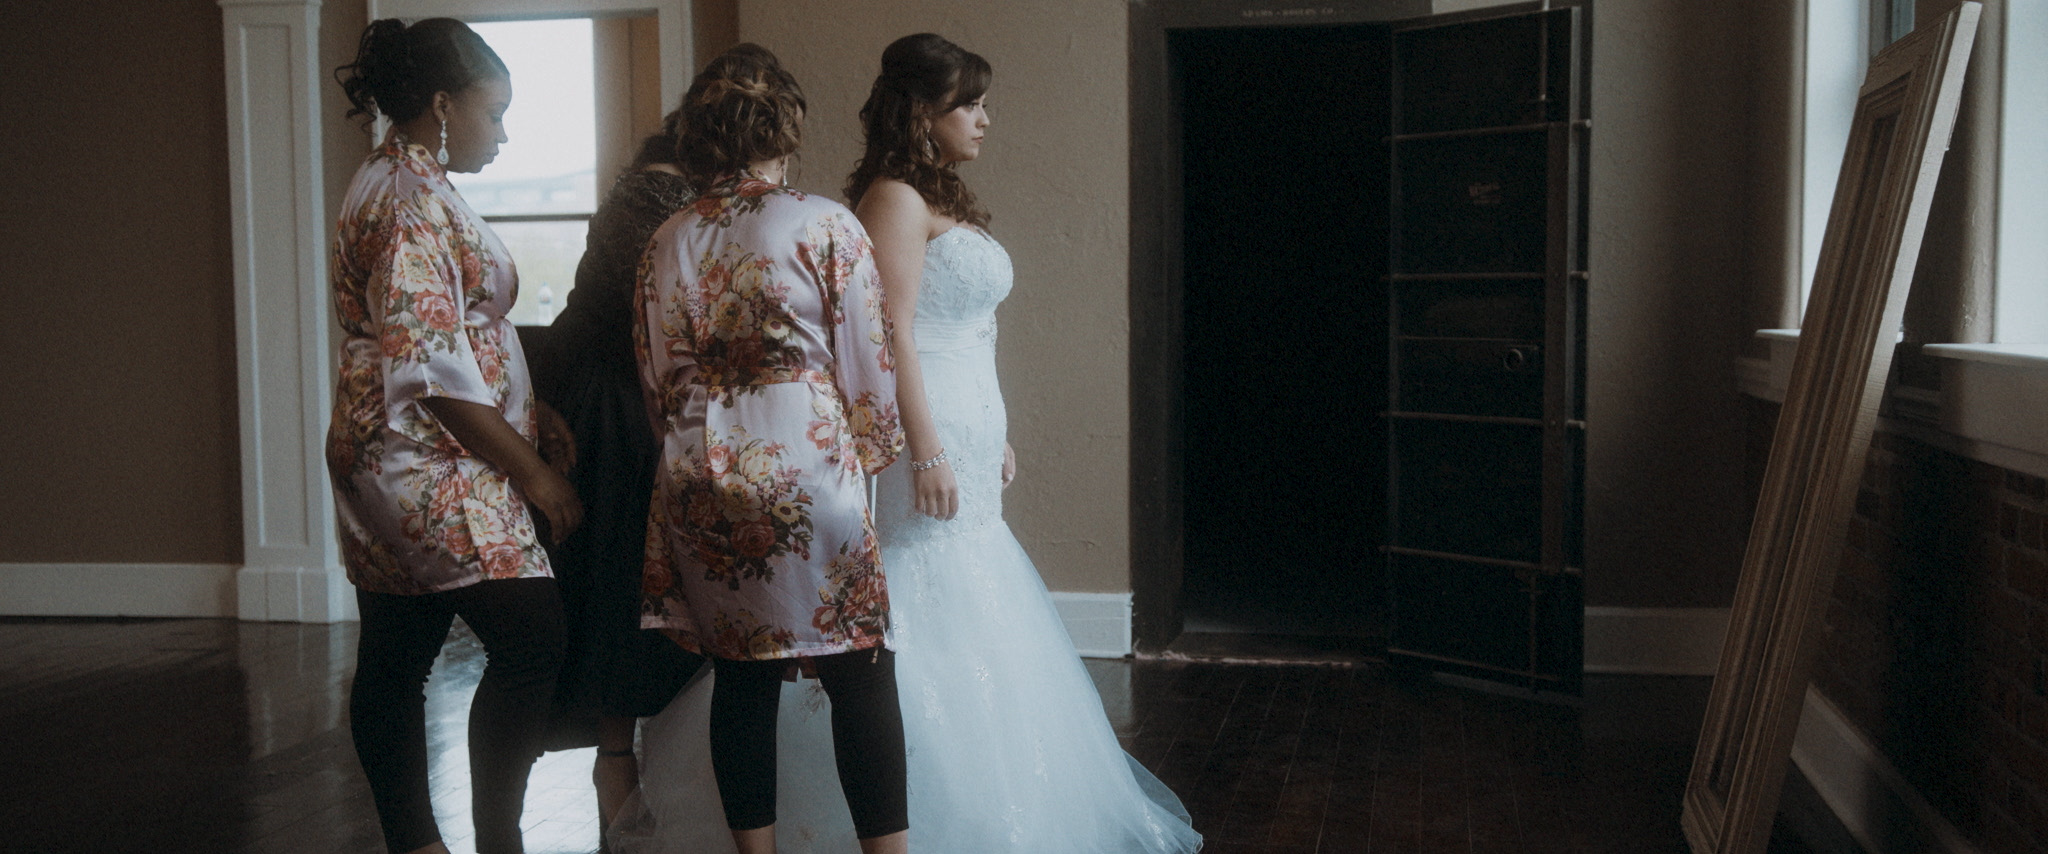 Coffin_Wedding_film.00_02_09_09.Still021.jpg